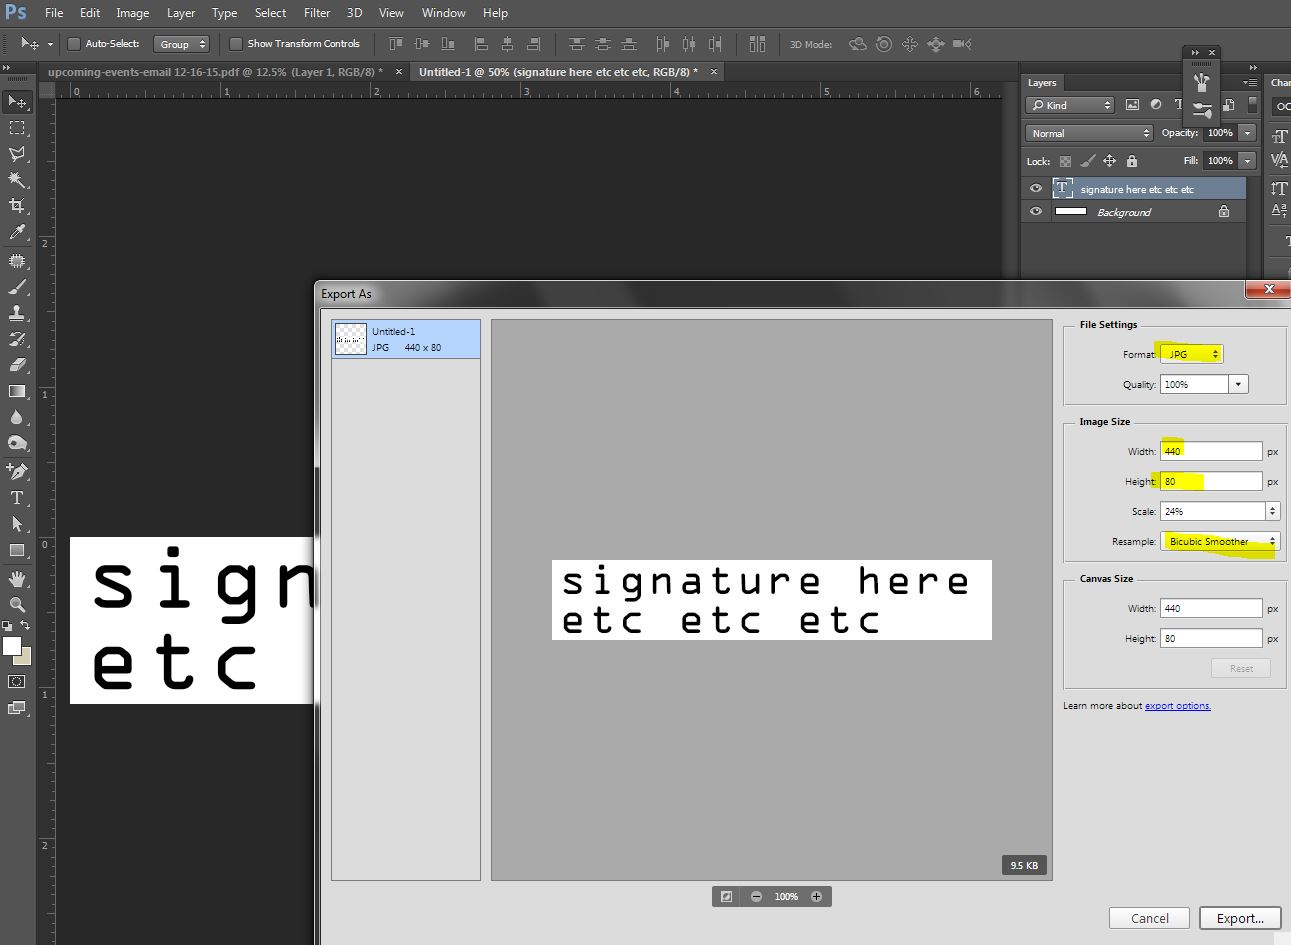 Exporting PNG & JPG blurry, can resize in gmail with no blur.